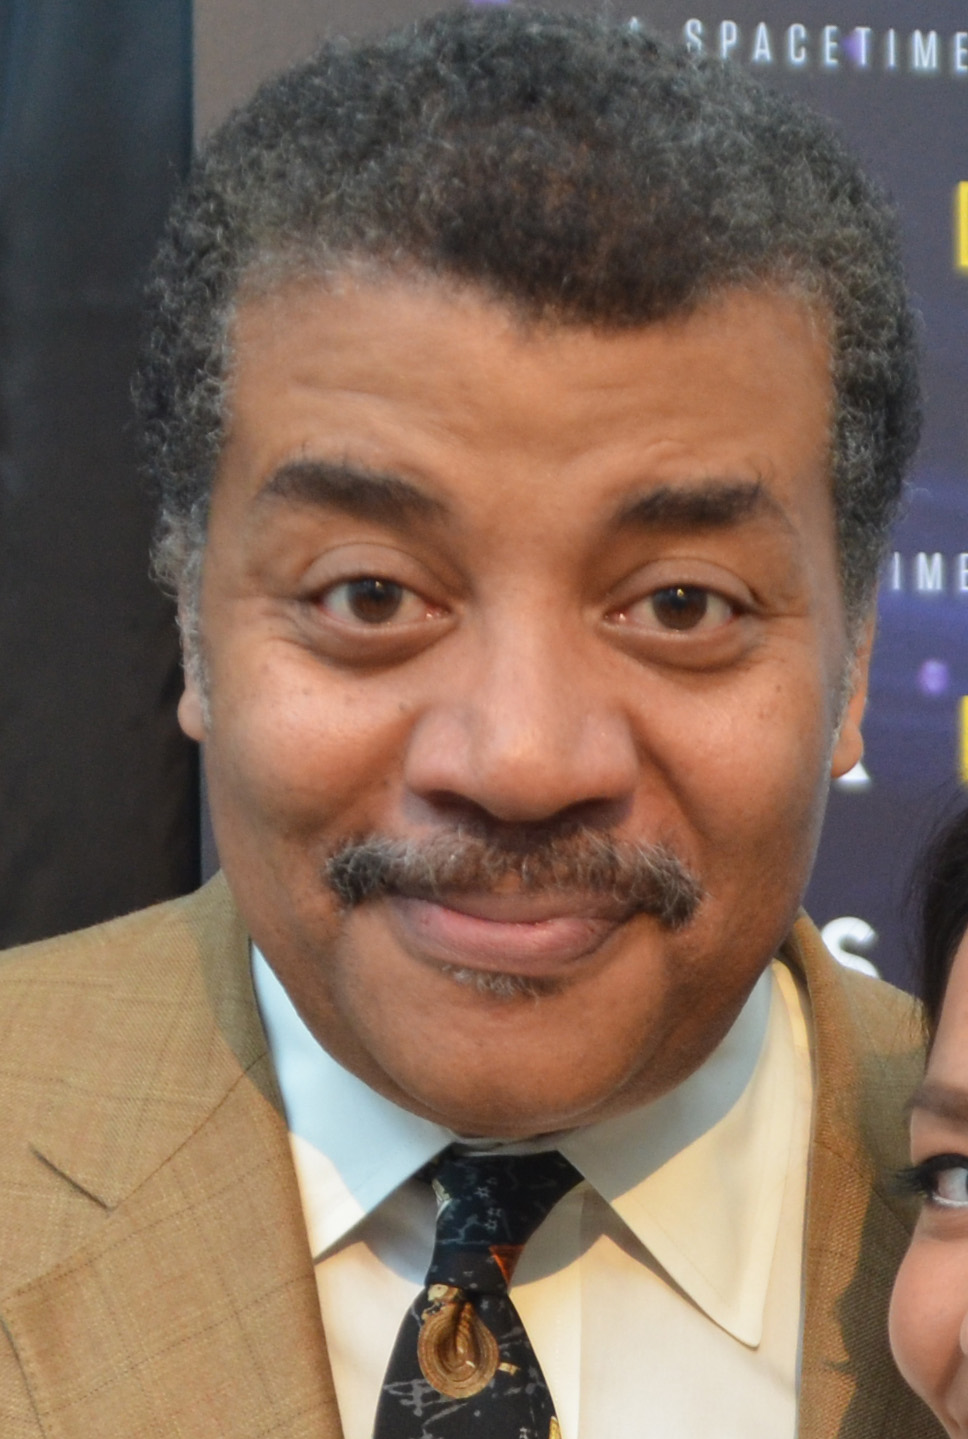 neil tyson Xem video  popular scientist and tv personality neil degrasse tyson has appeared on nova and the daily show , and runs new york's hayden planetarium learn more at biographycom.